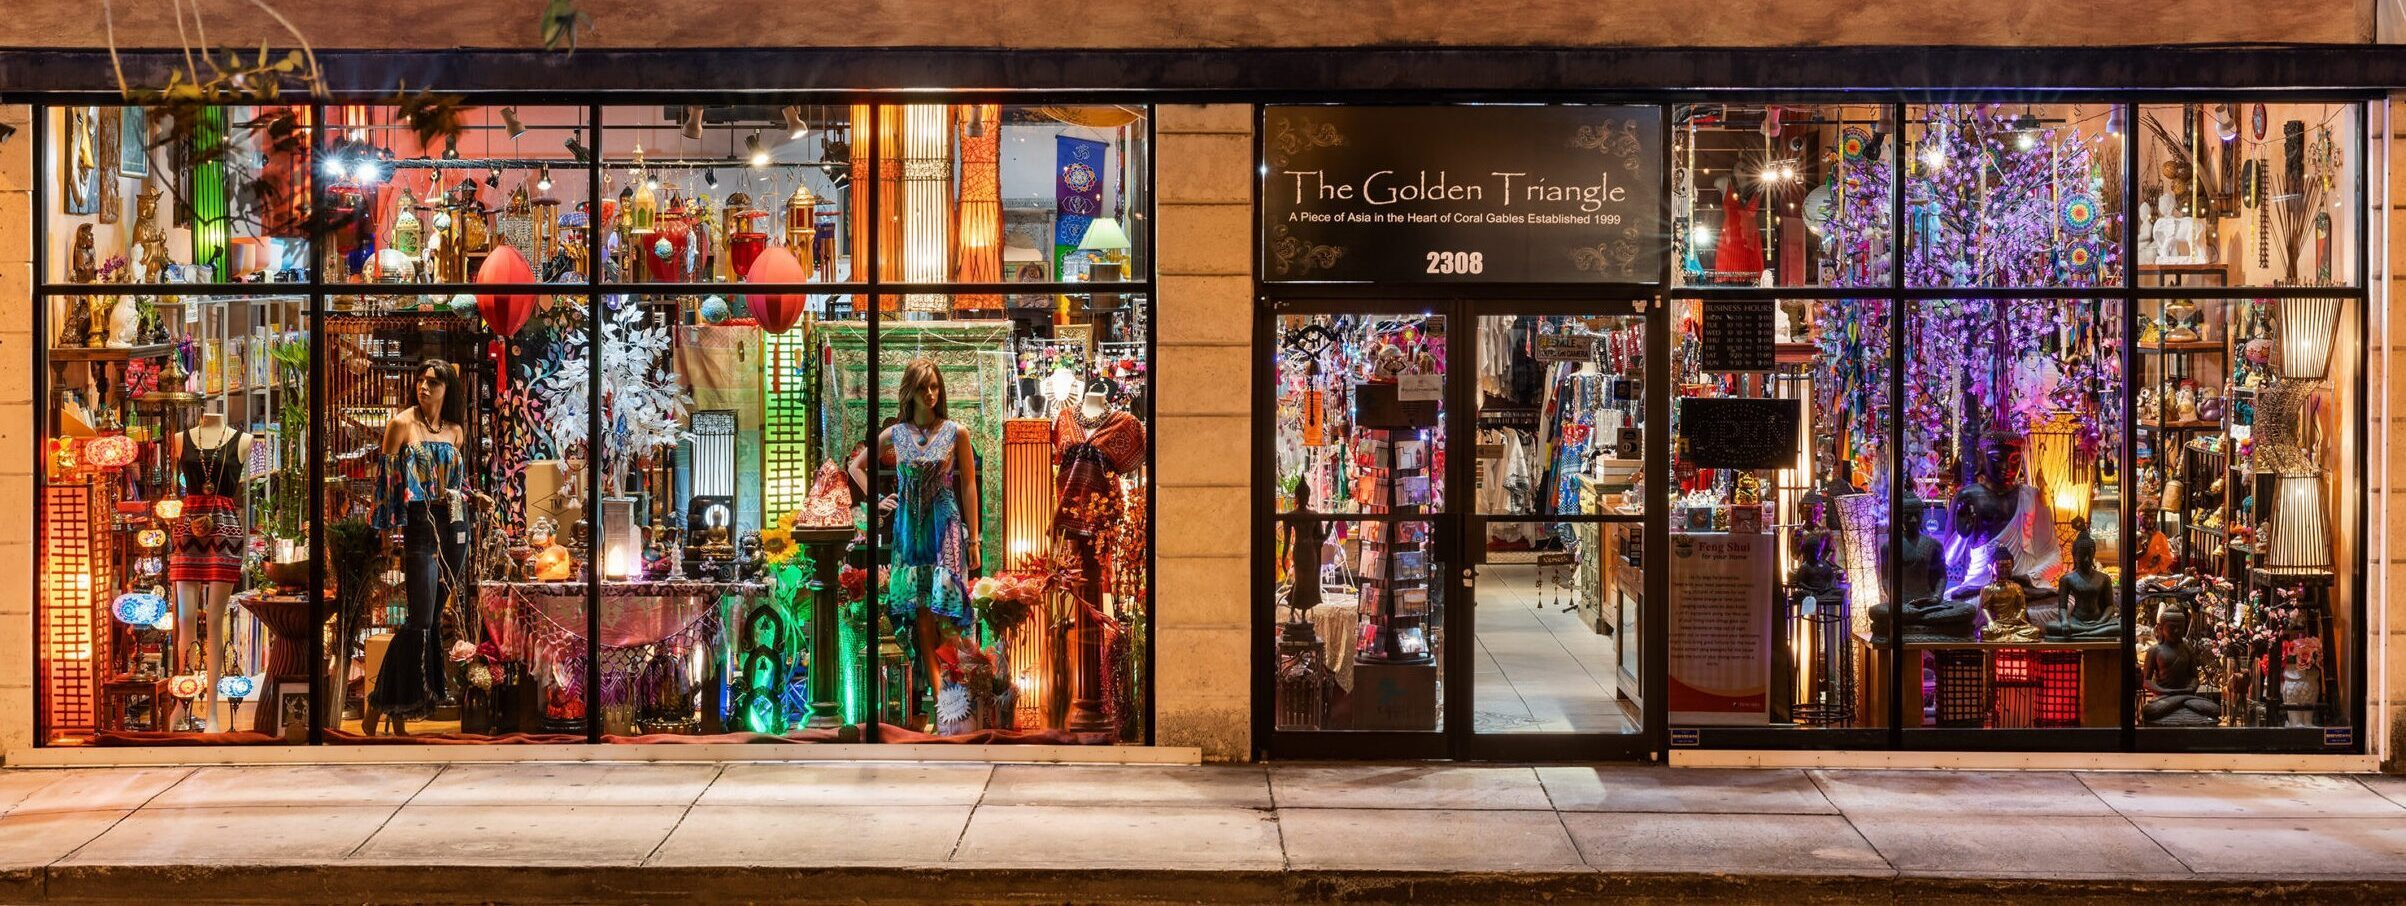 Storefront The Golden Triangle Store